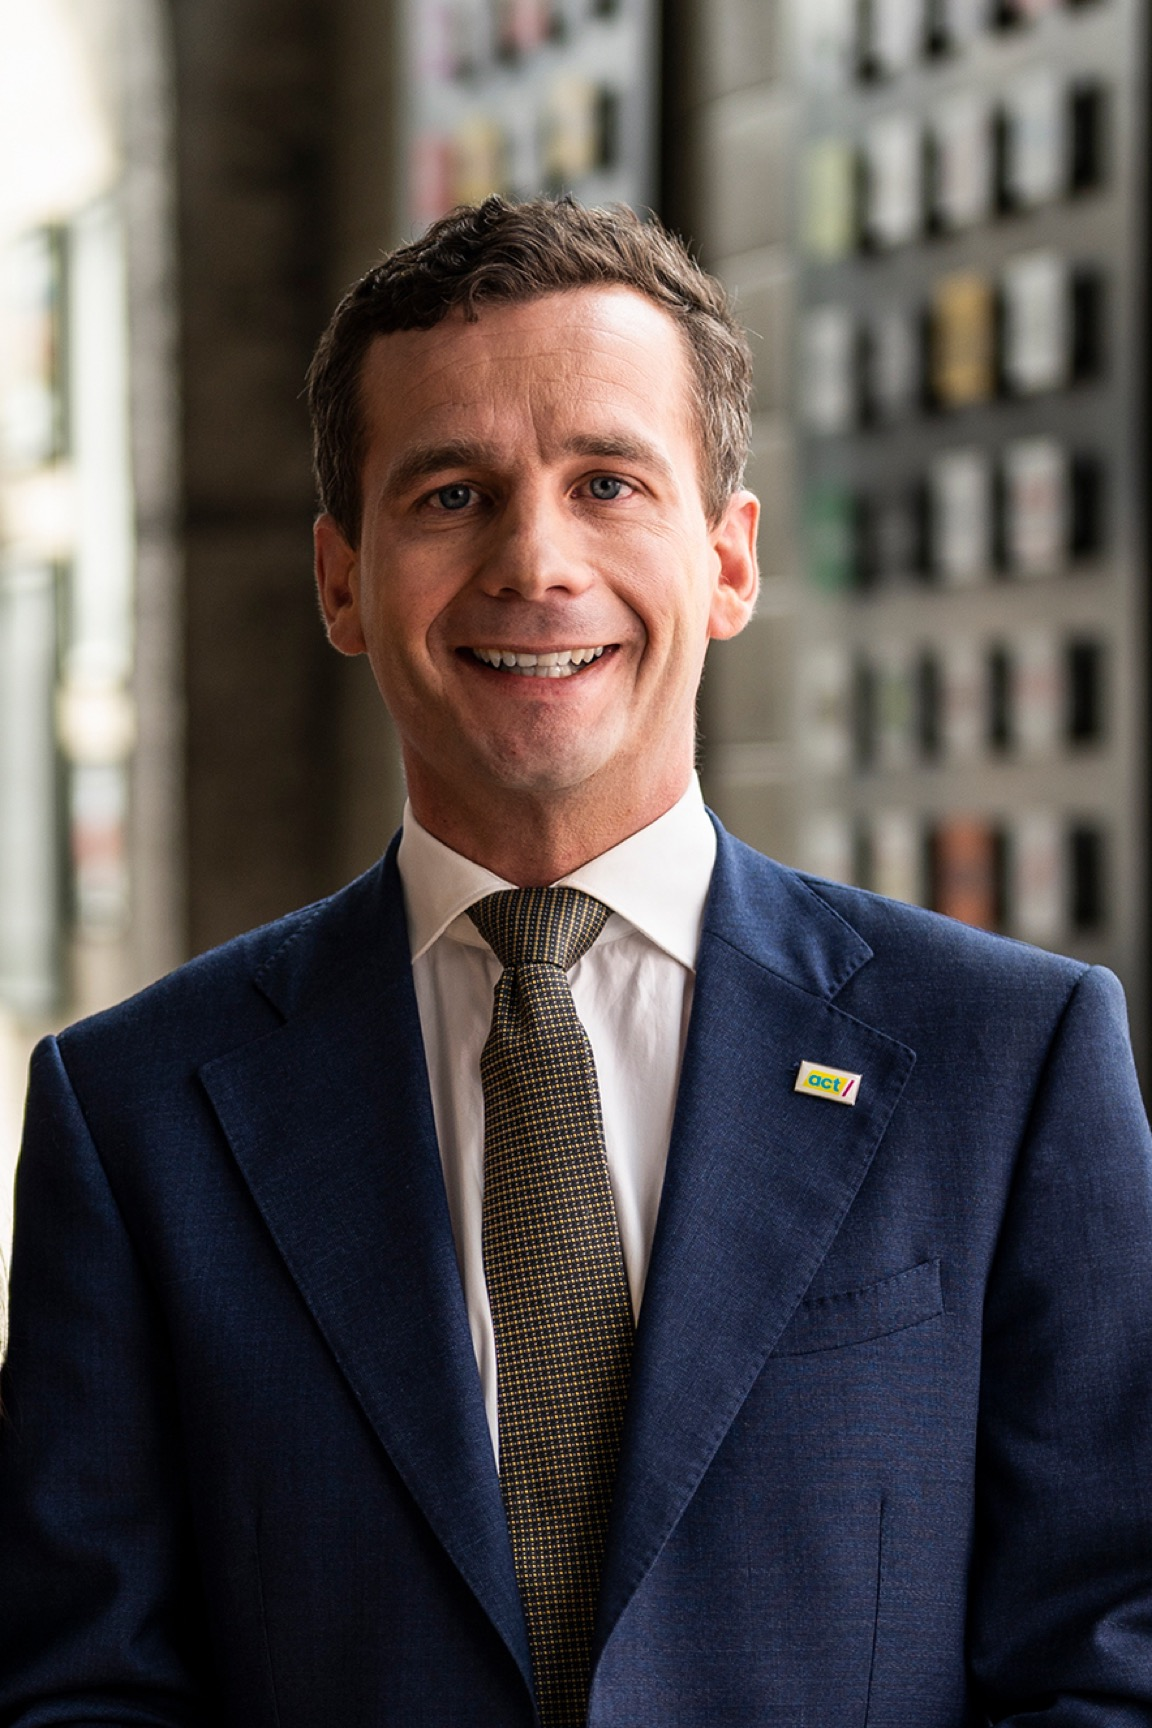 David Seymour | ACT Candidate for Epsom